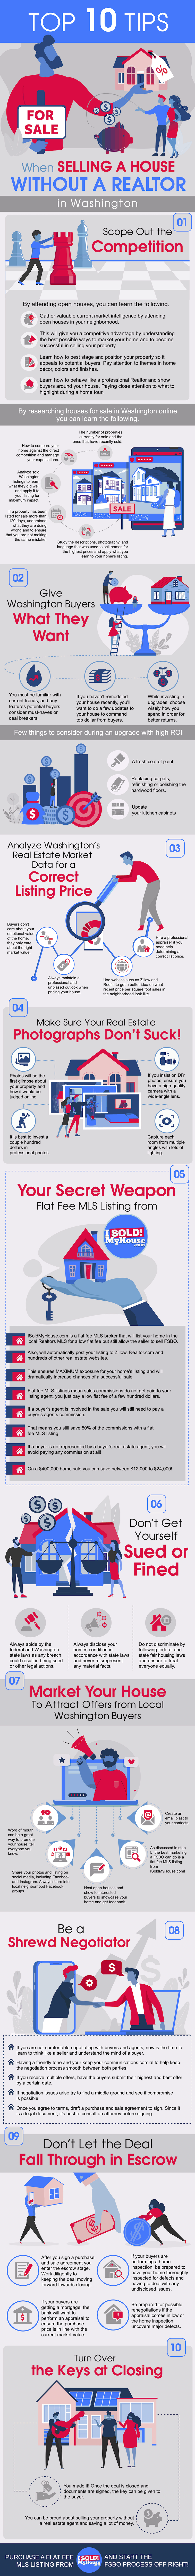 infographic of the 10 steps to sell a house in washington without an agent